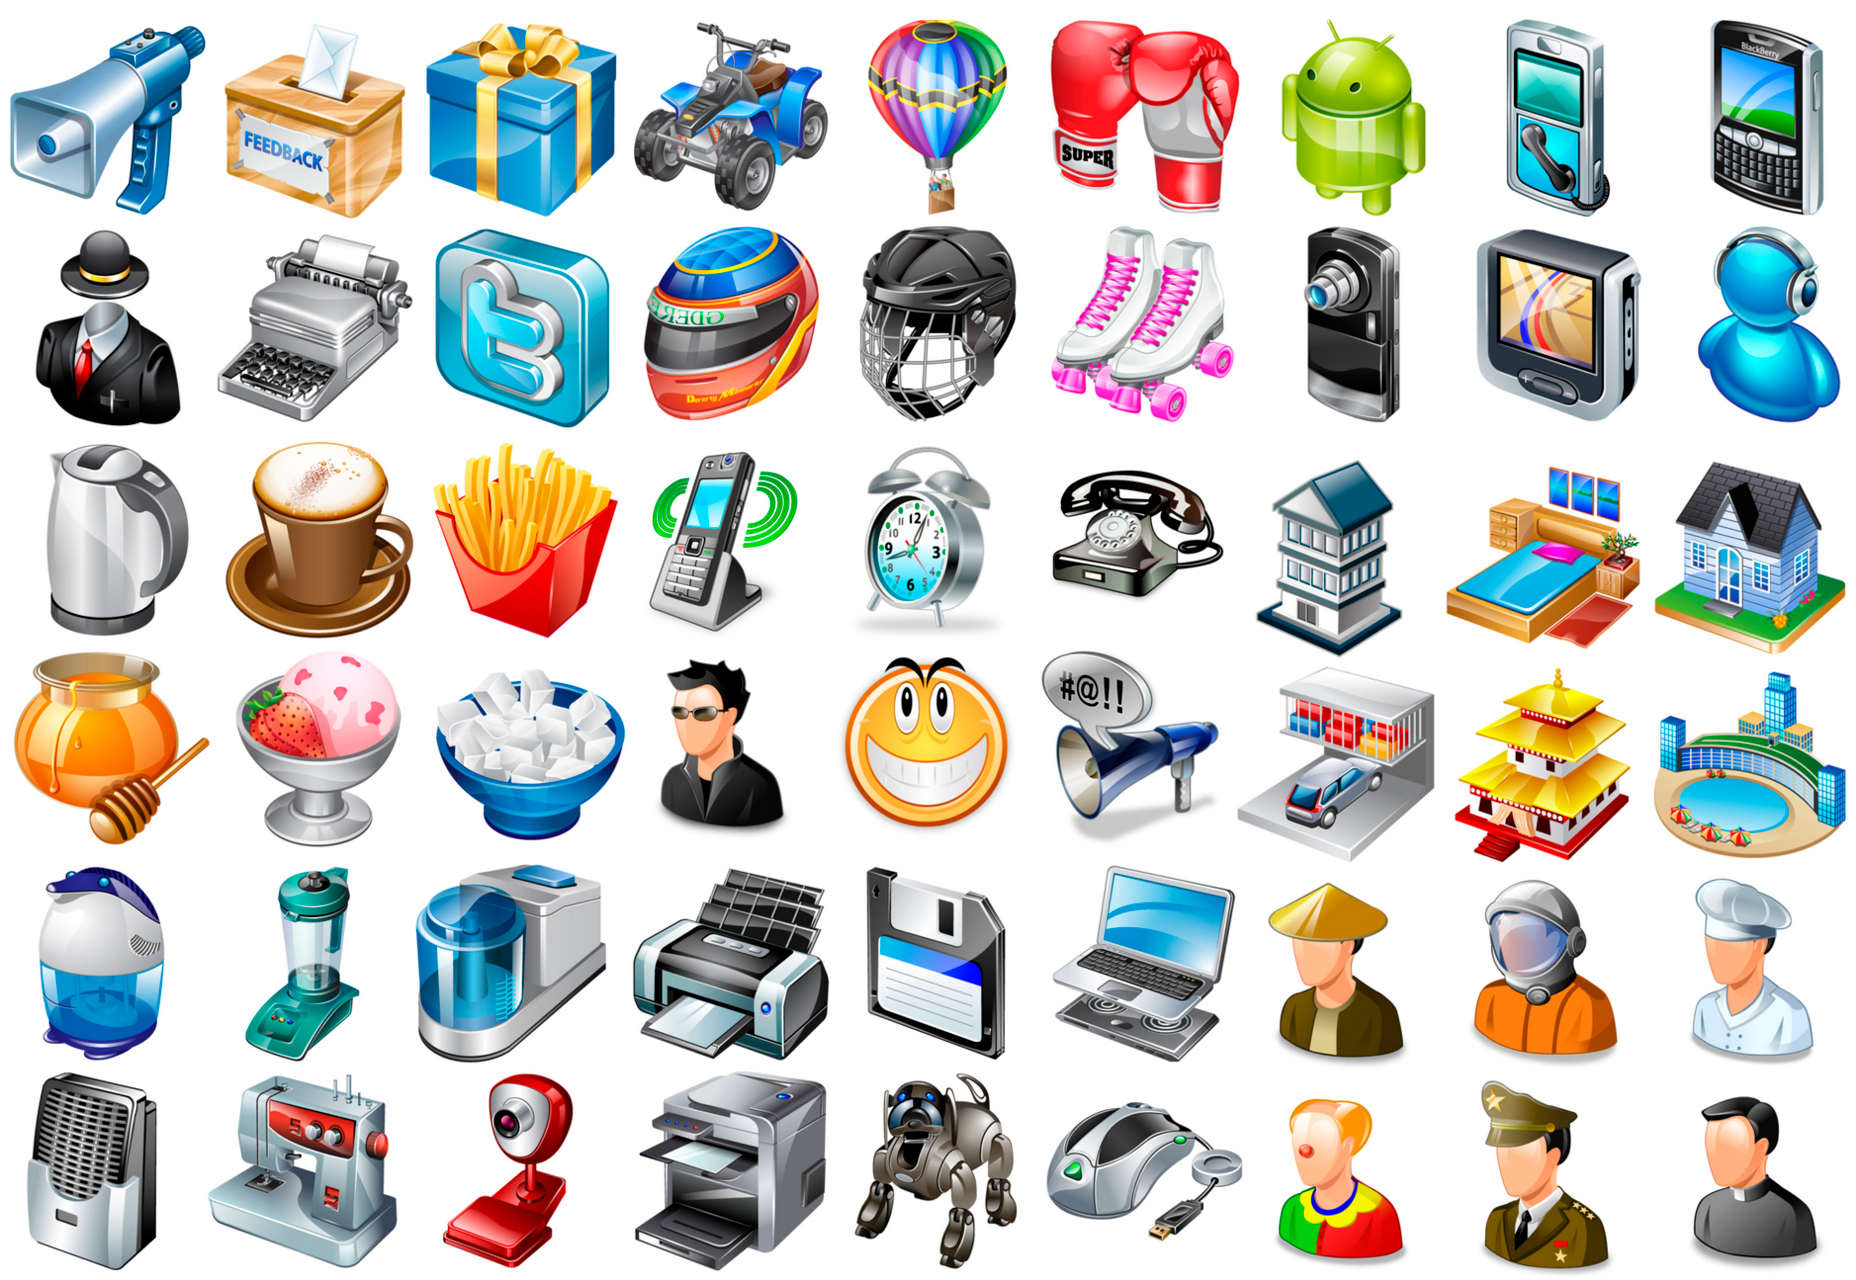 91k-realistic-desktop-icons-bundle